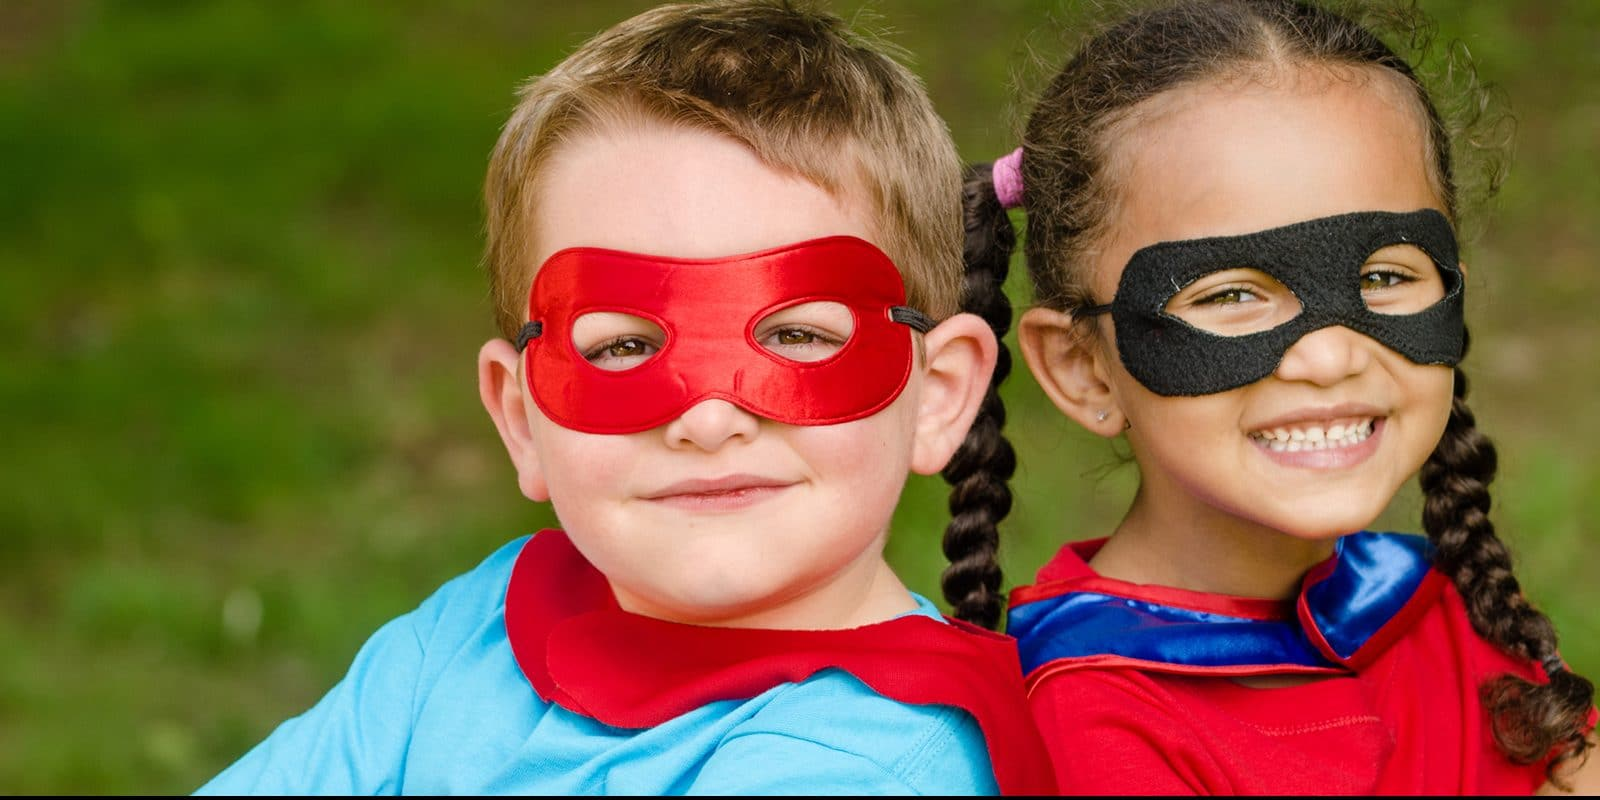 a young boy and girl wearing masks and capes like super heros